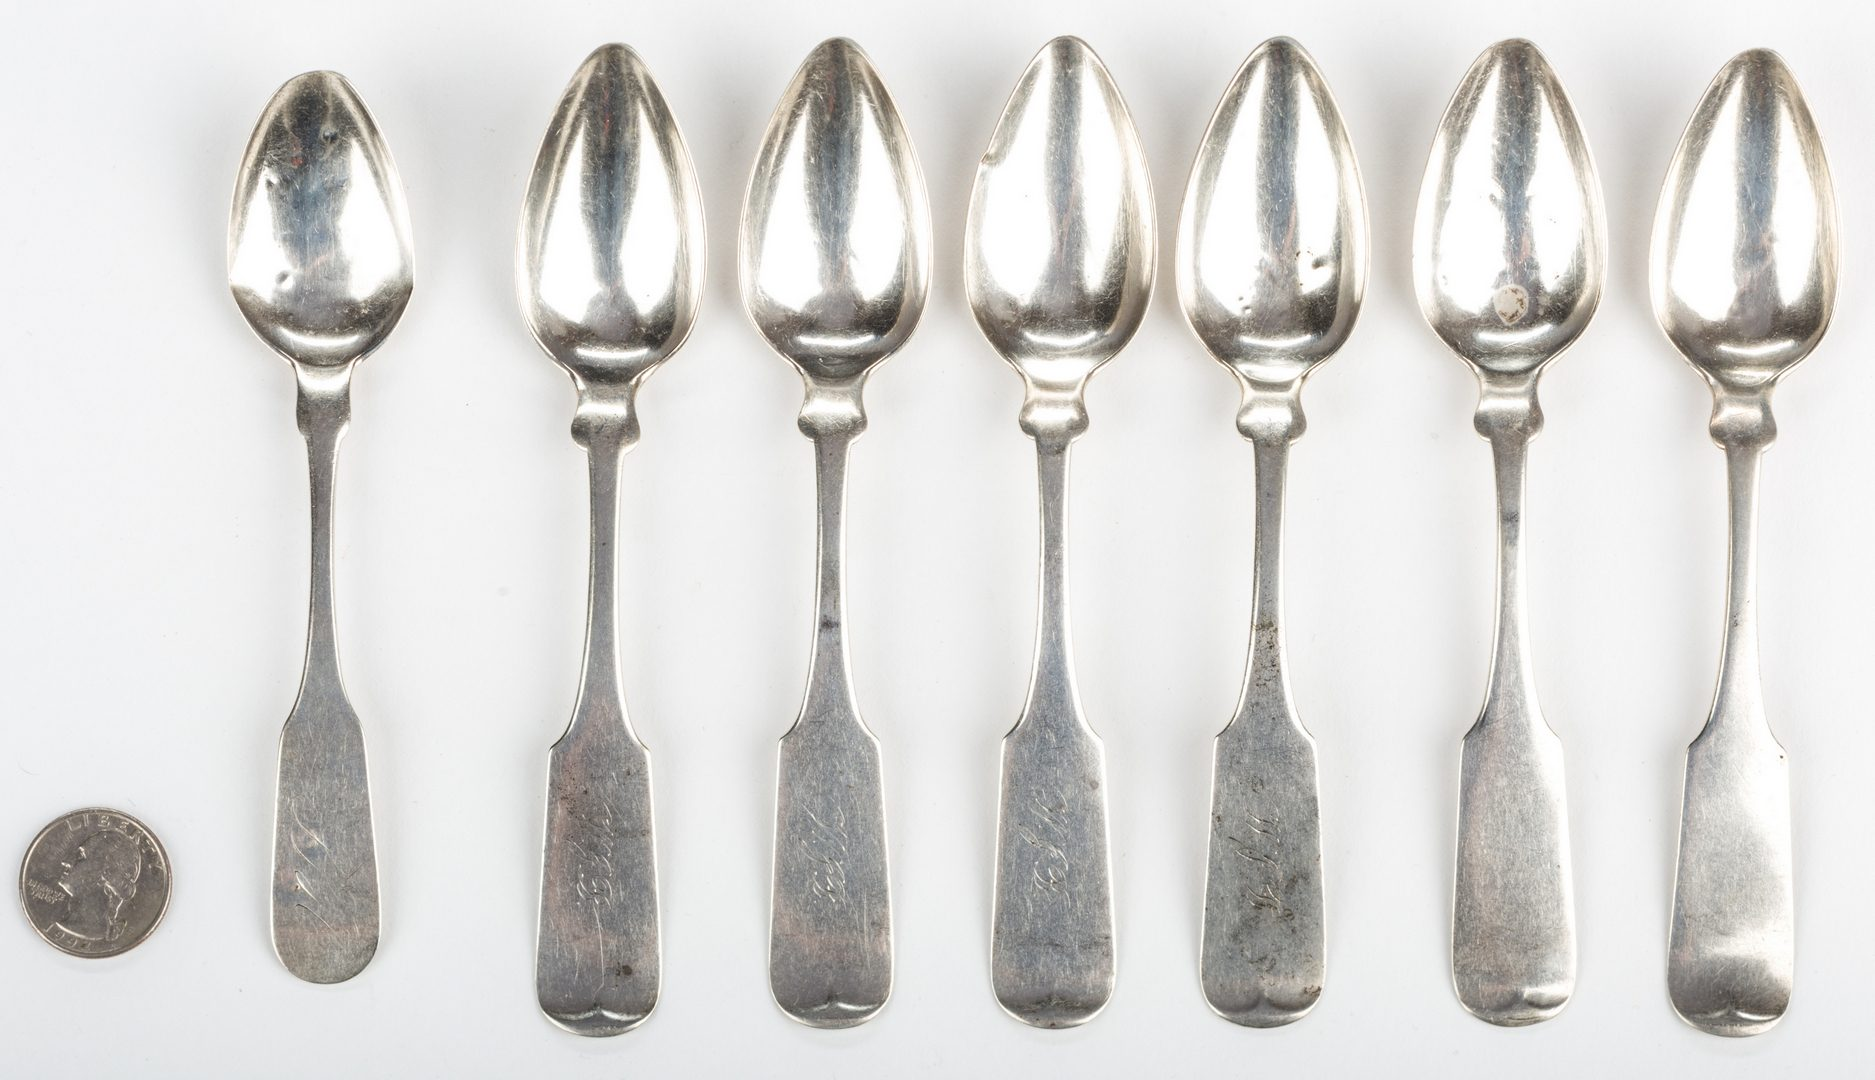 Lot 285: 7 Georgia Related Coin Silver Teaspoons